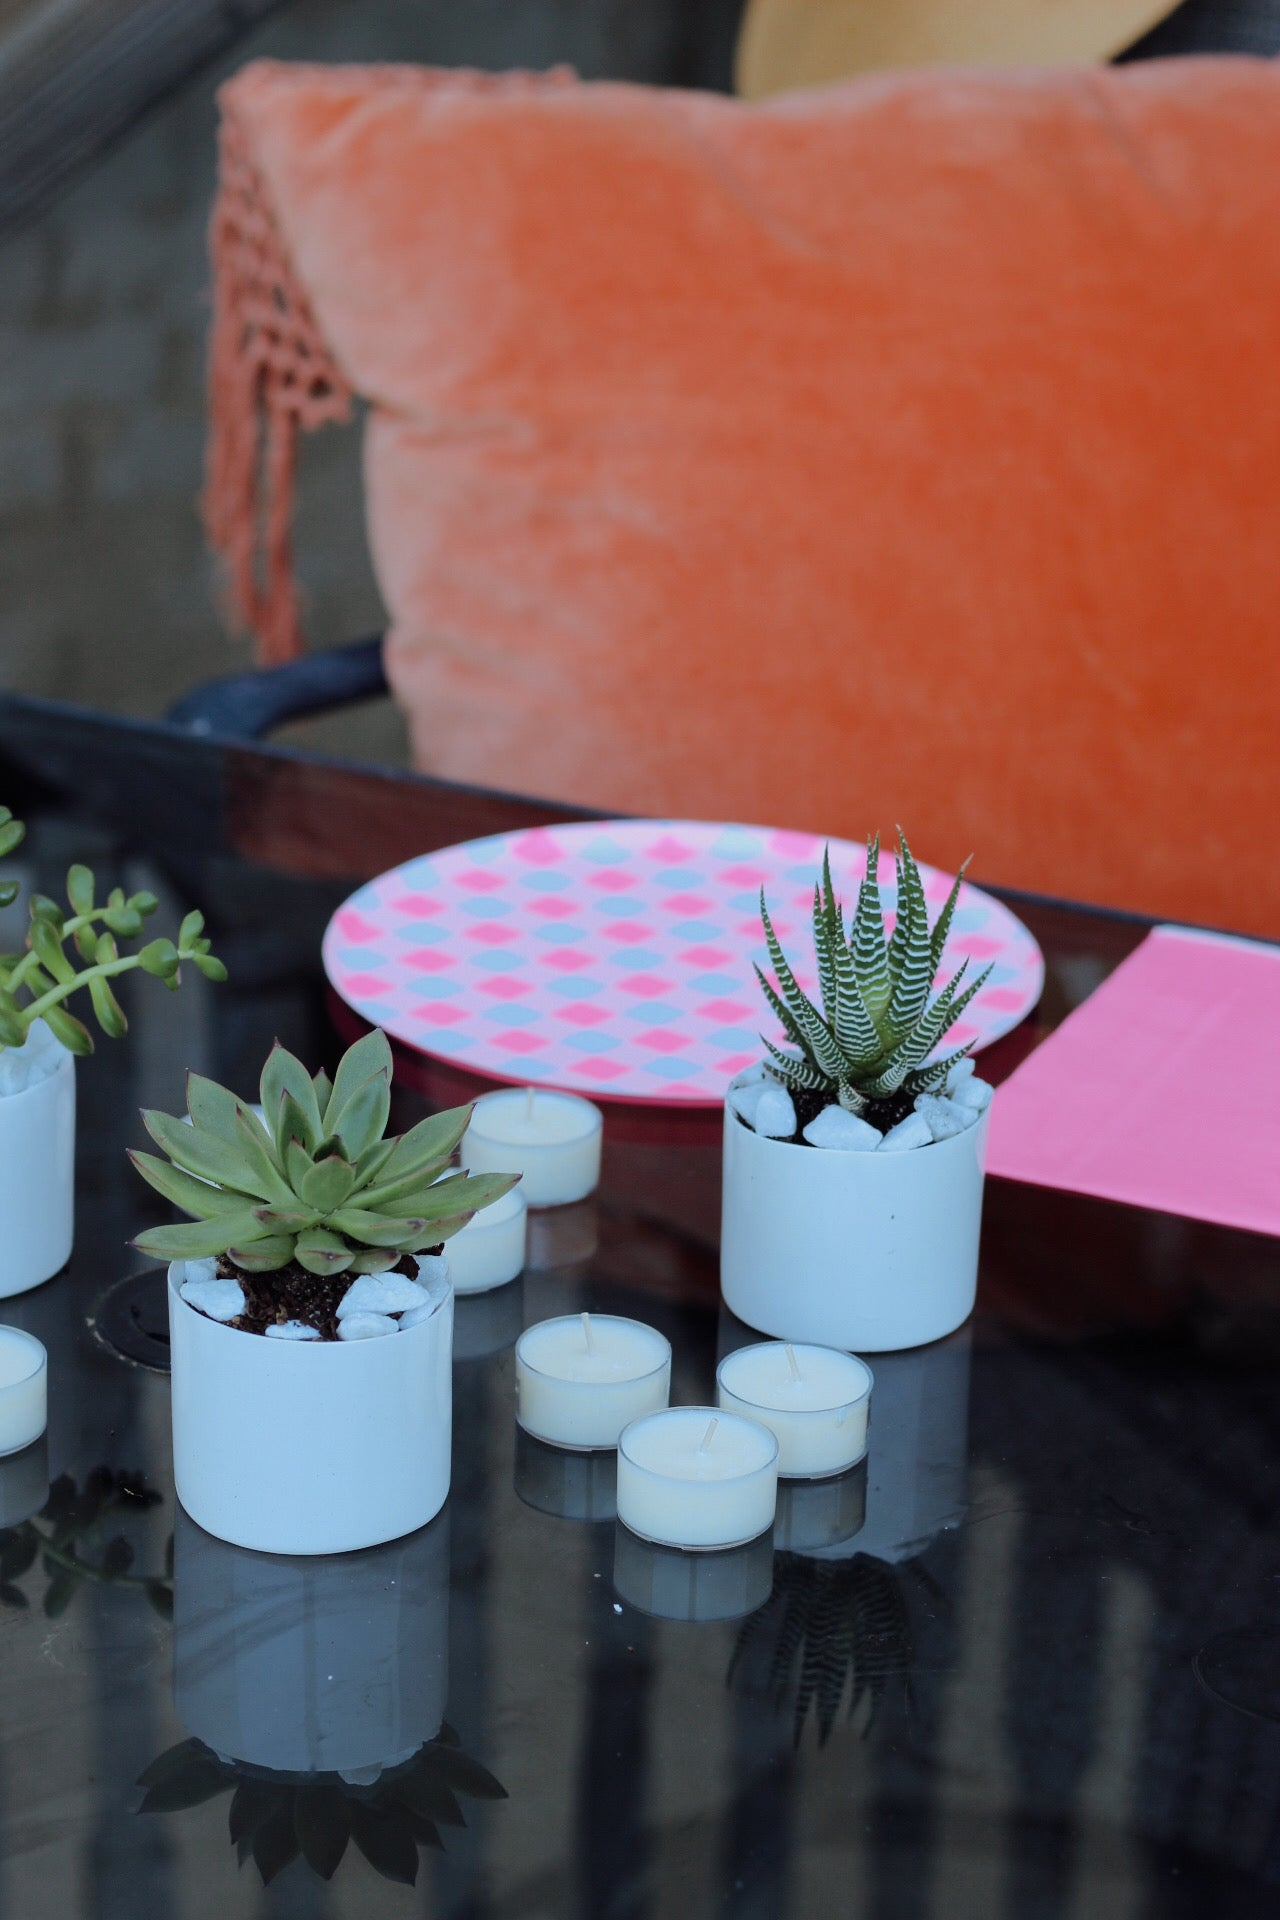 ZuZu's x Presley Paige - Patio Party Bundle | this bundle includes your choice of trio (bud vases or succulents), Murphy's Naturals citronella tea lights, and a disposable plate/napkin combo!